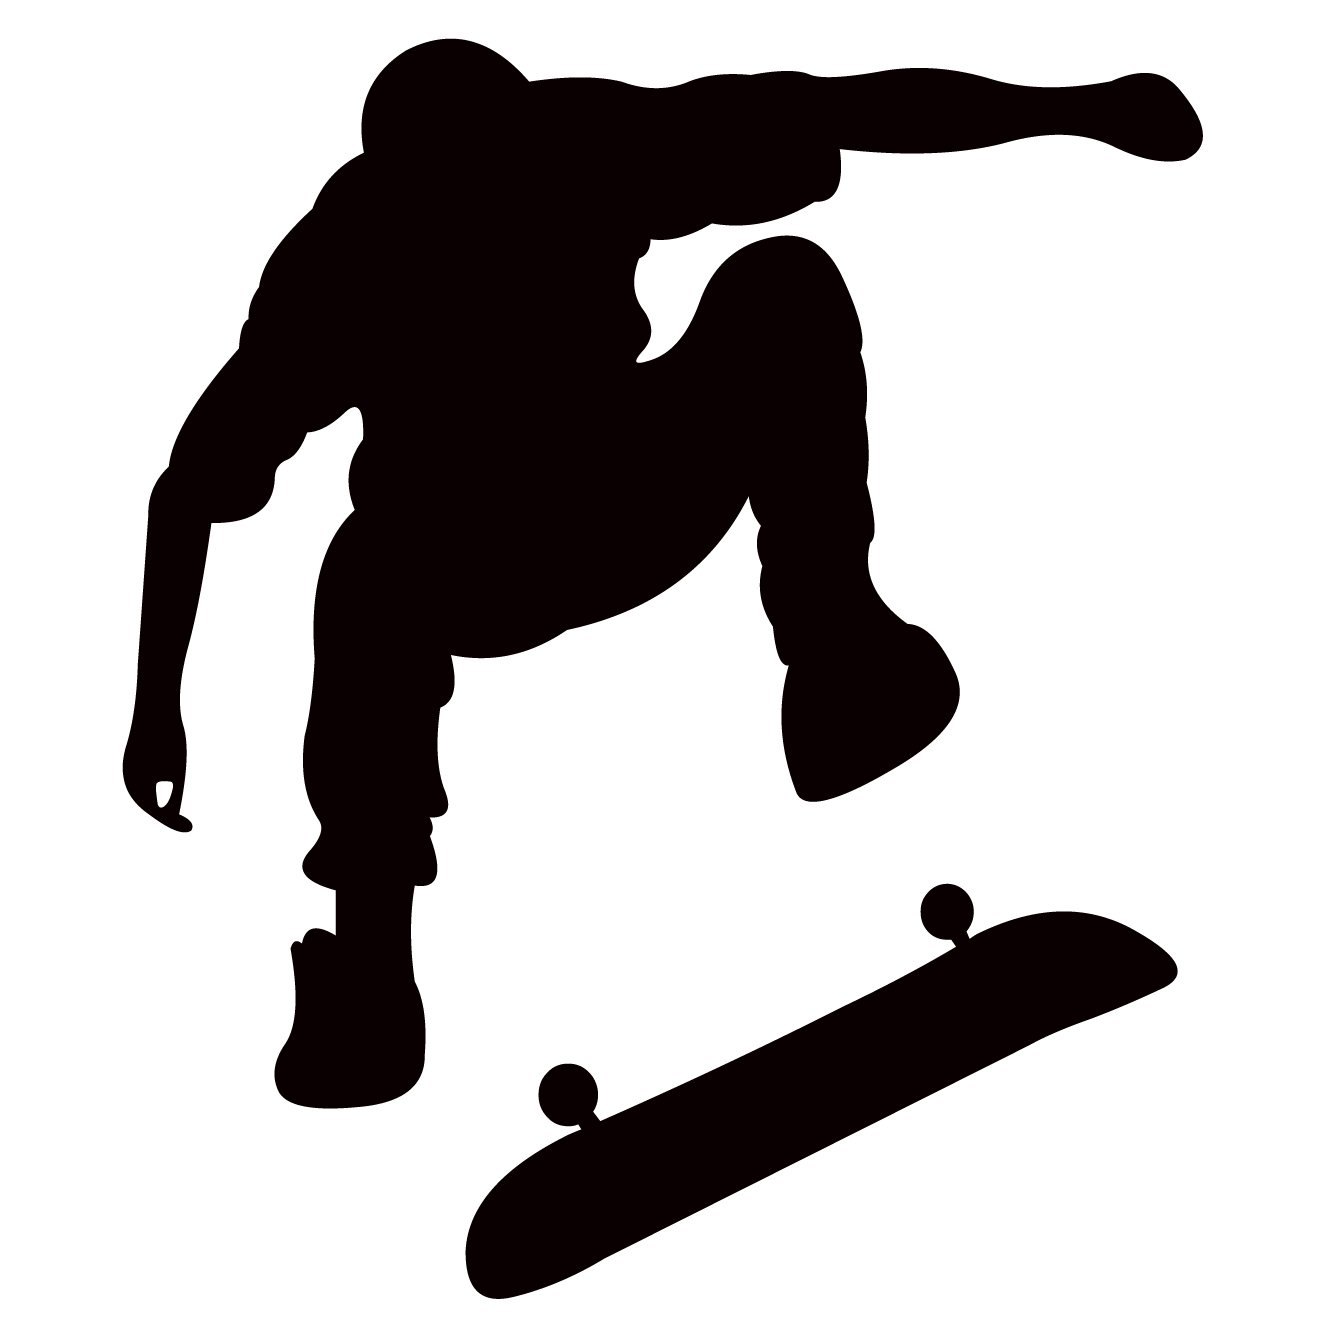 Amazon.com: Playing Skateboards Sports Wall Decal Home